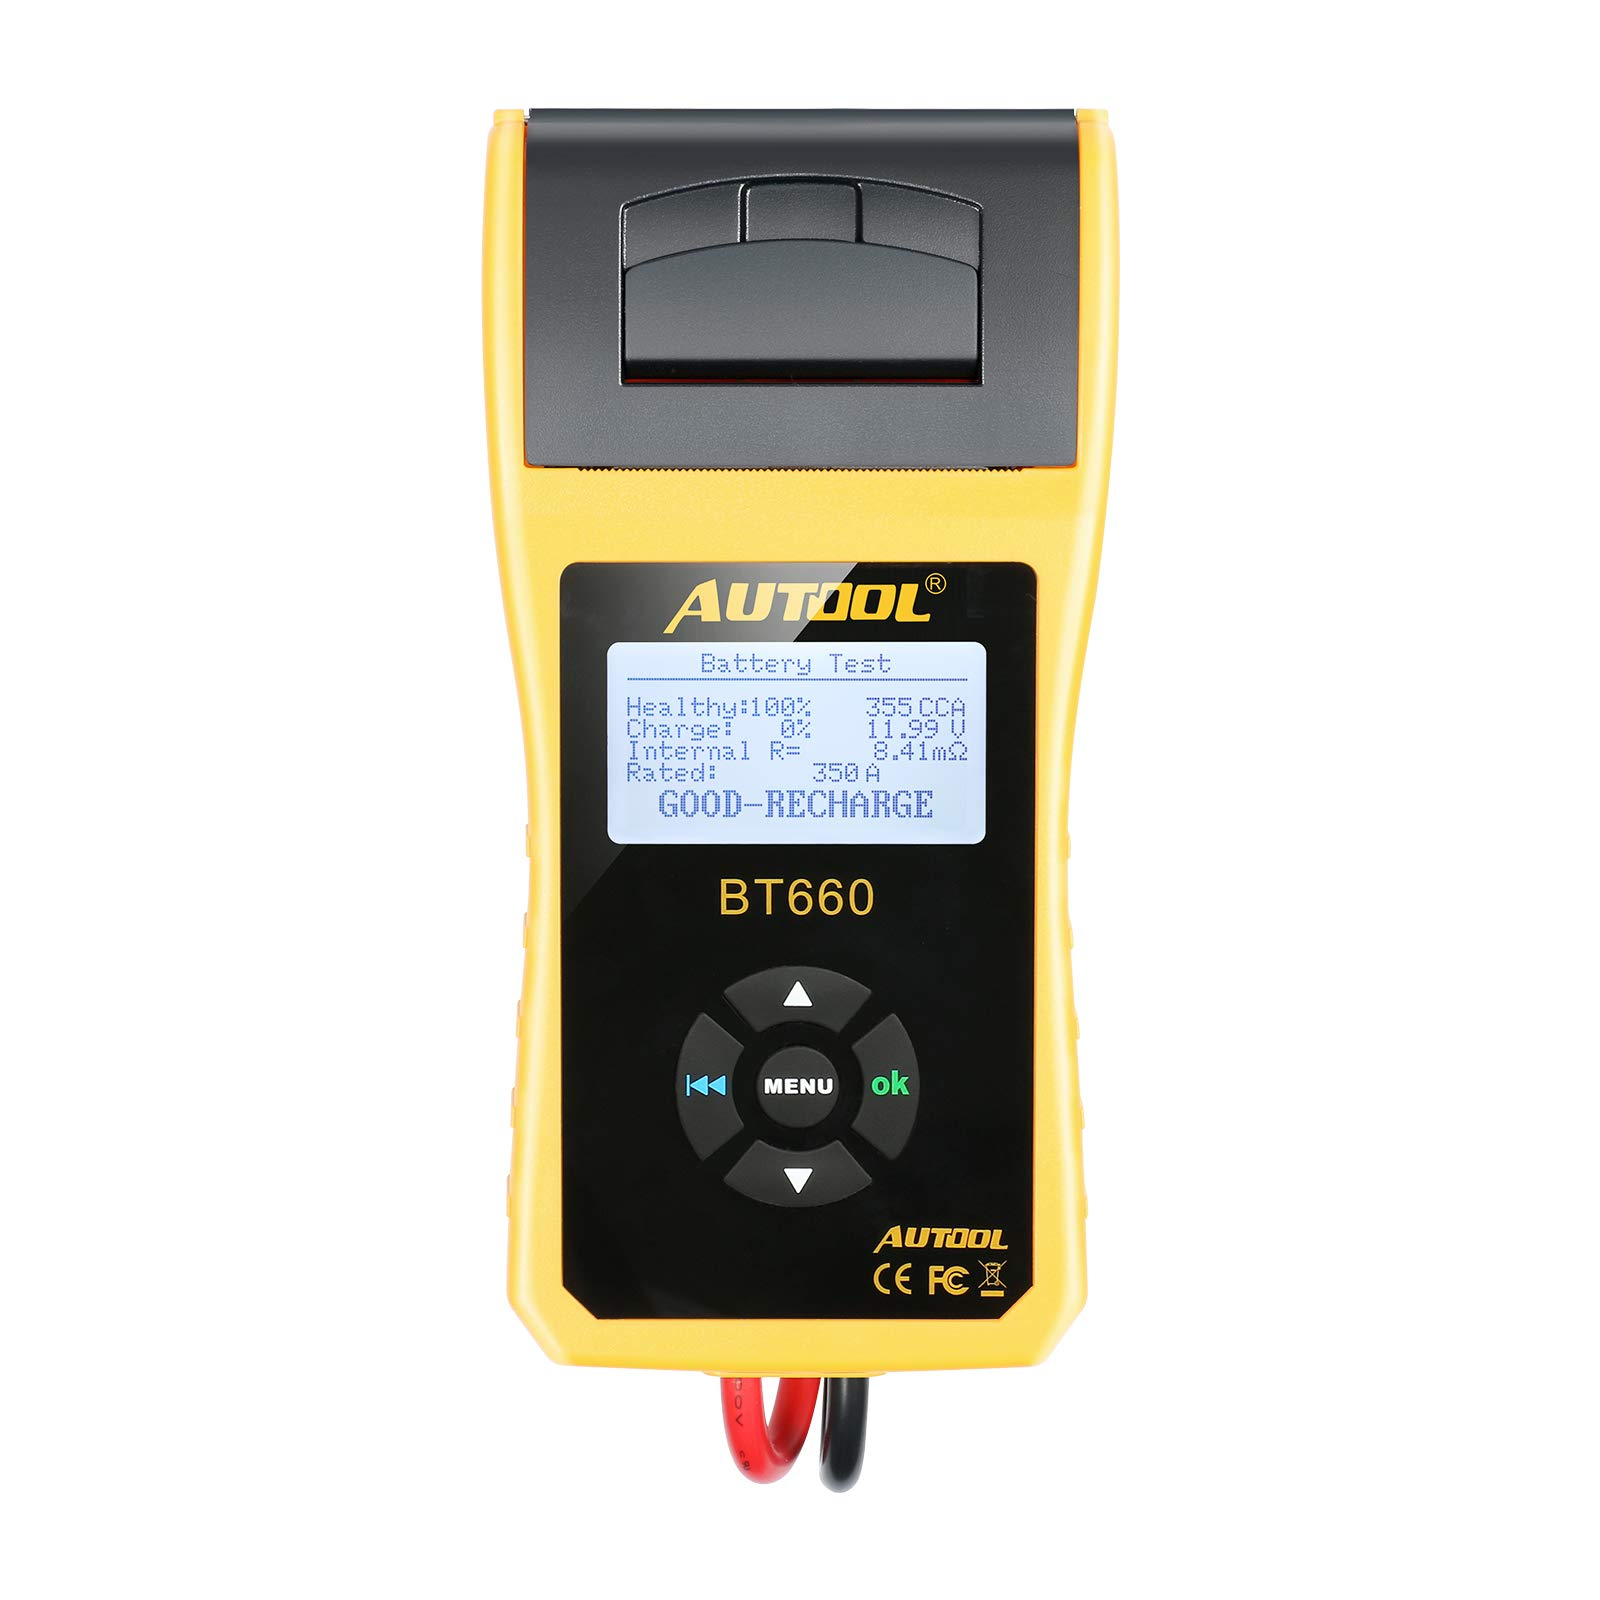 AUTOOL BT660 Battery Conductance Tester 12V/24V BT-660 Auto Battery Testers Automotive Diagnostic Tools for Heavy Duty Trucks, Light Duty Truck, Cars by AUTOOL (Image #2)